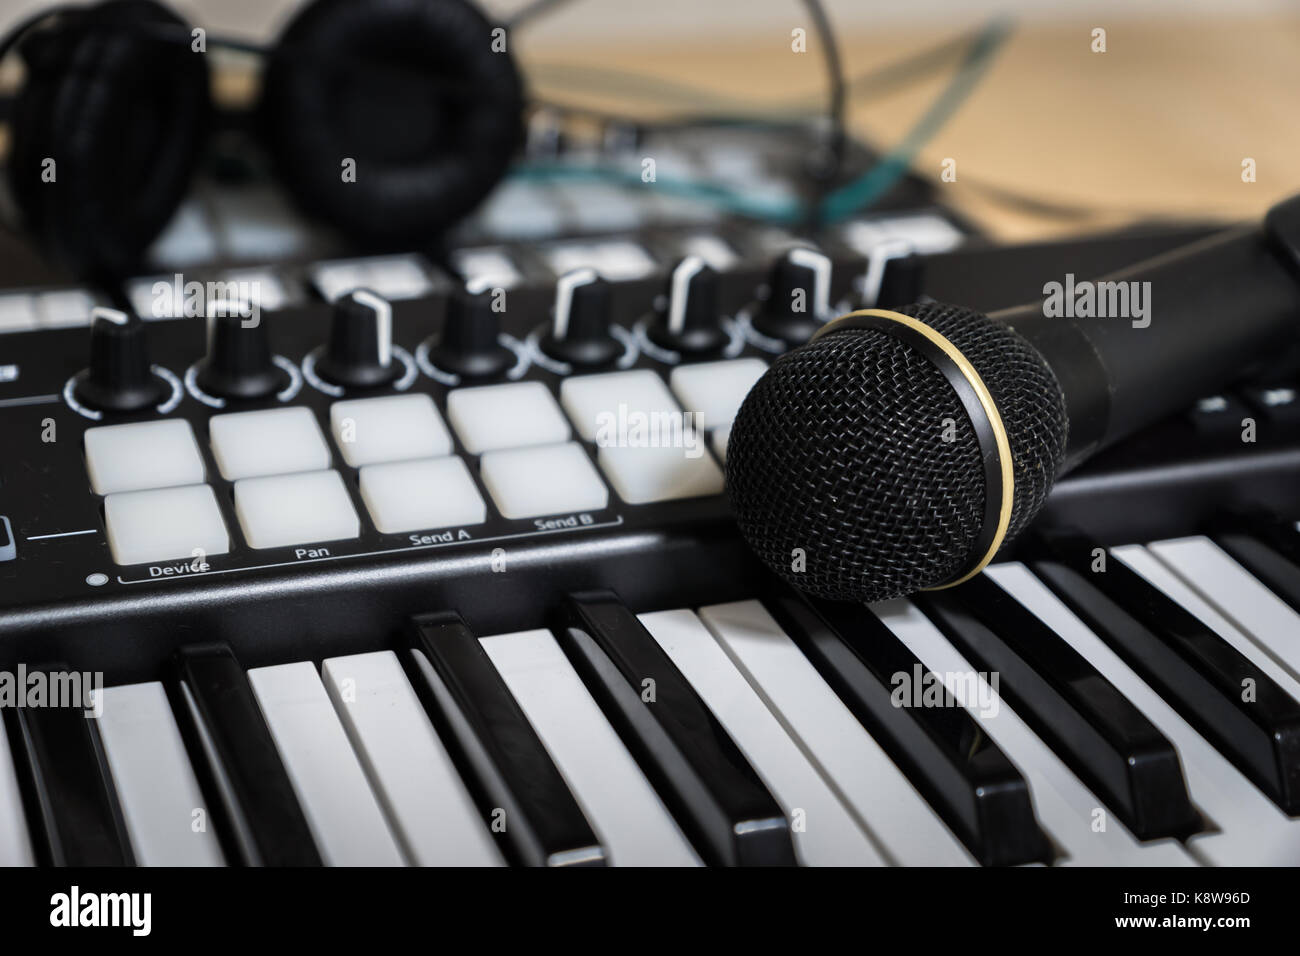 midi keyboard / midi controller and microphone , electronic musical synthesizer for EDM music production - Stock Image